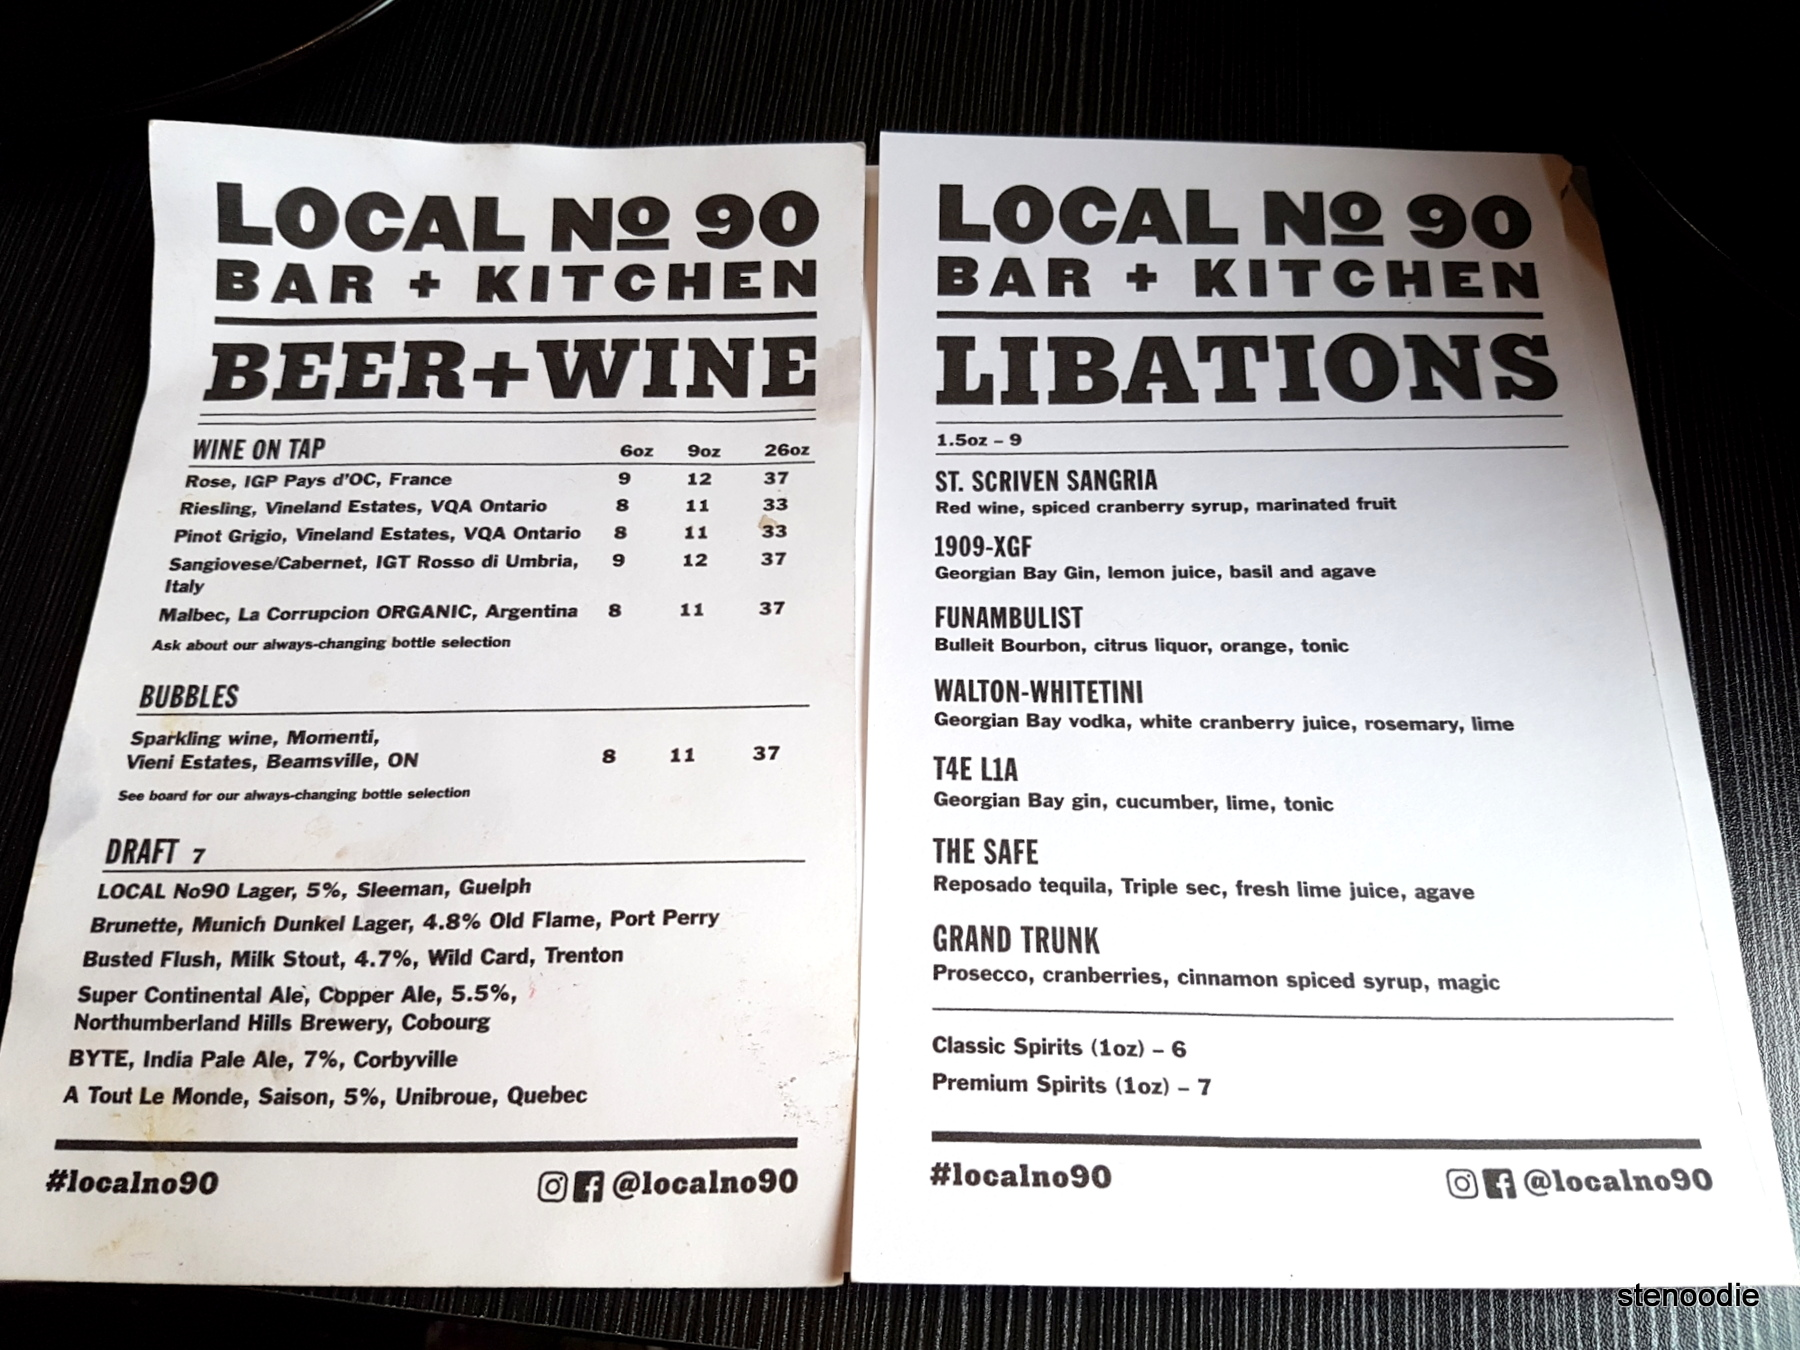 Local No90 Bar + Kitchen drinks menu and prices